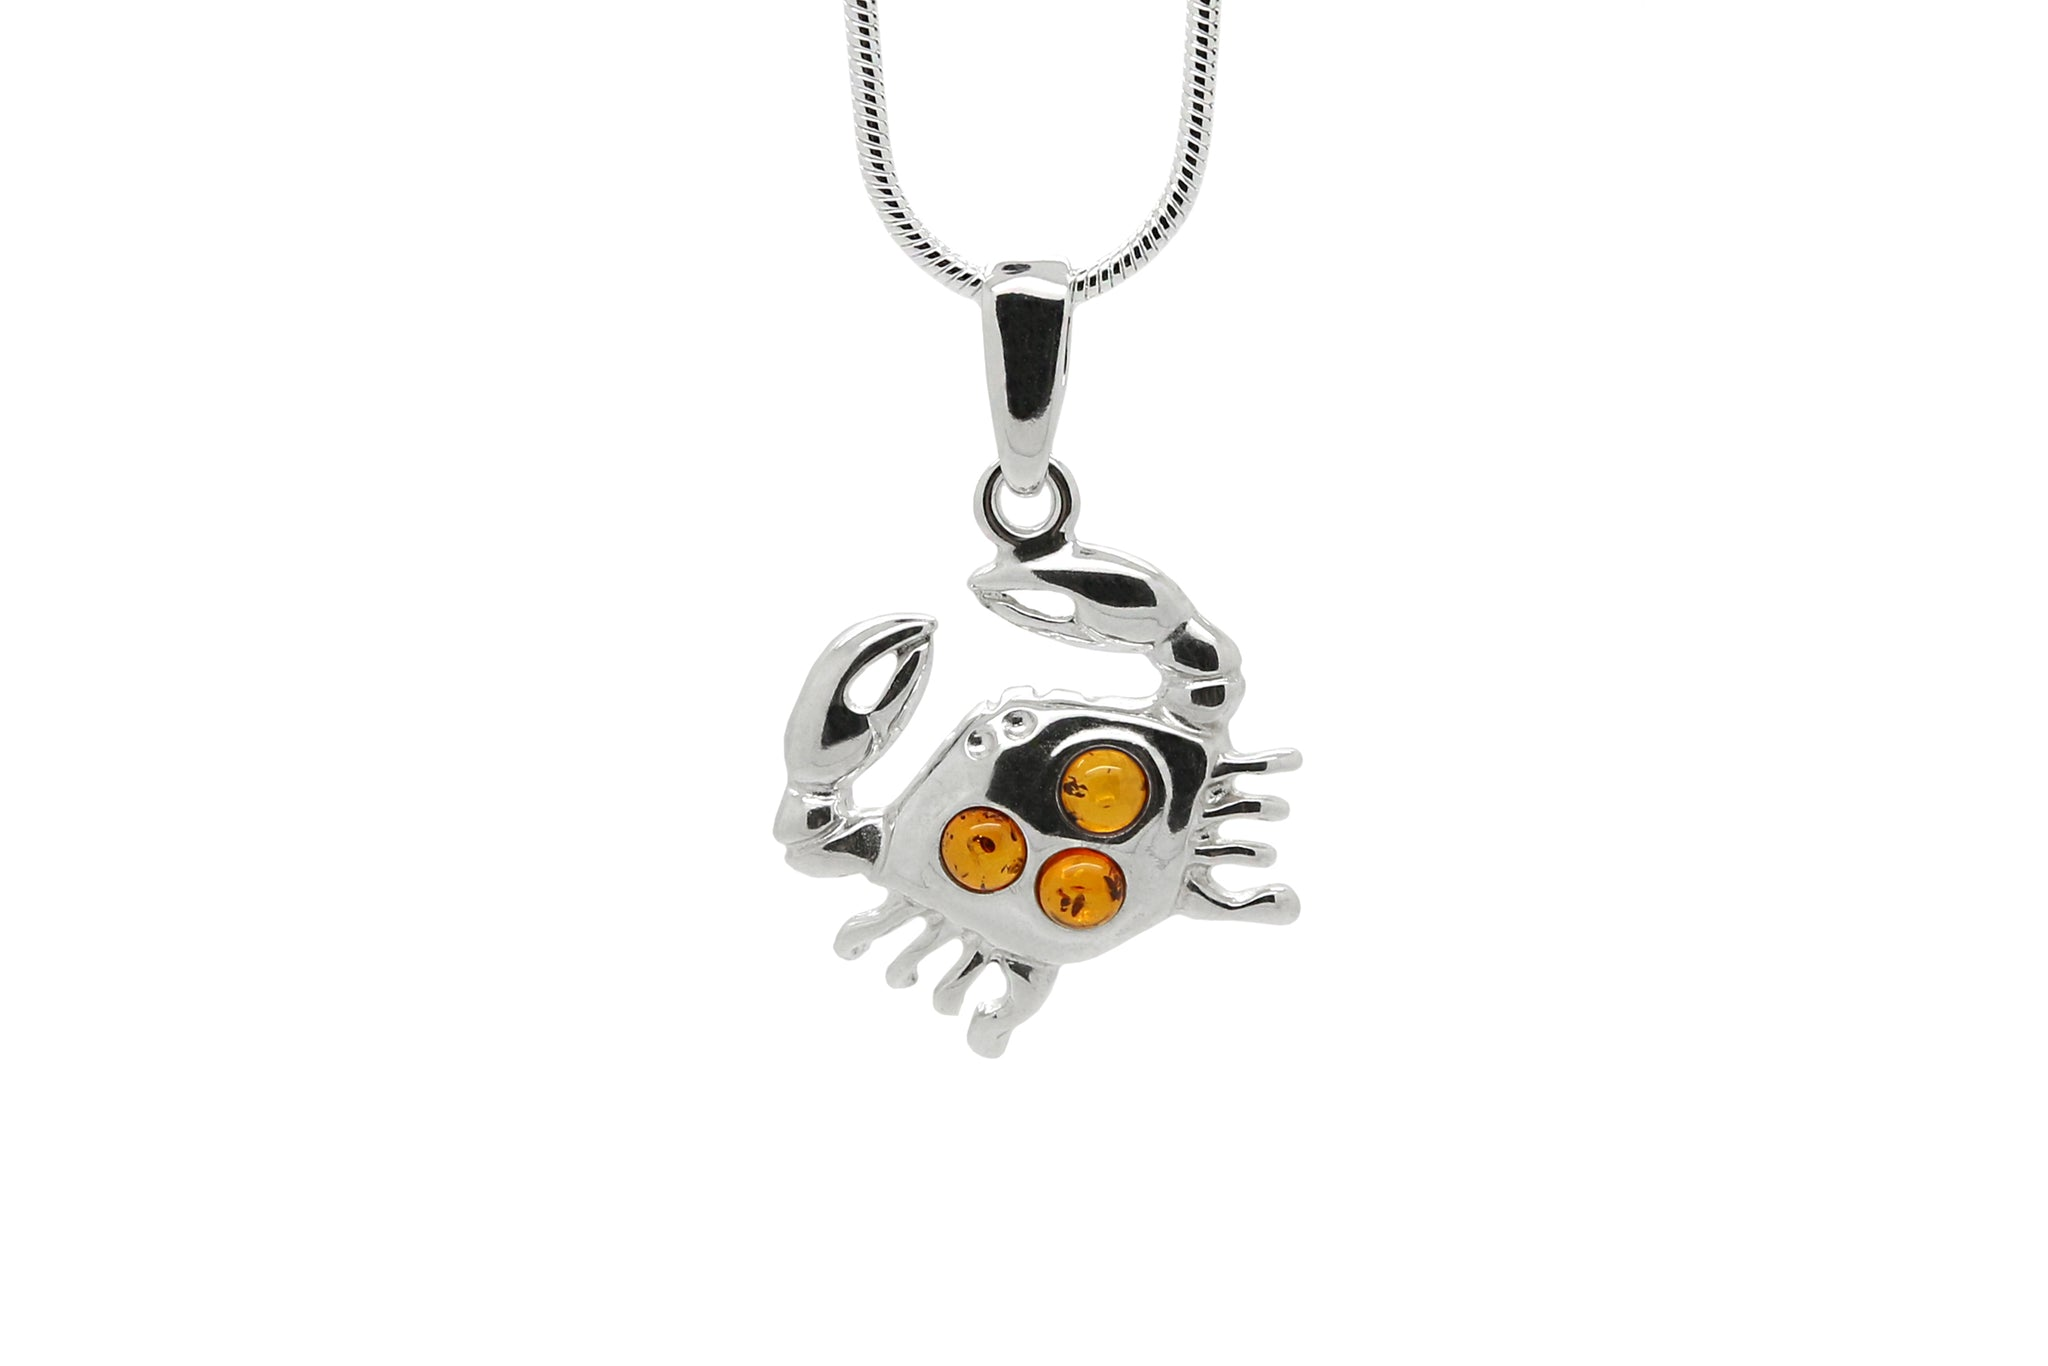 925 sterling silver cancer zodiac sign pendant necklace with 925 sterling silver cancer zodiac sign pendant necklace with genuine baltic amber chain included aloadofball Image collections